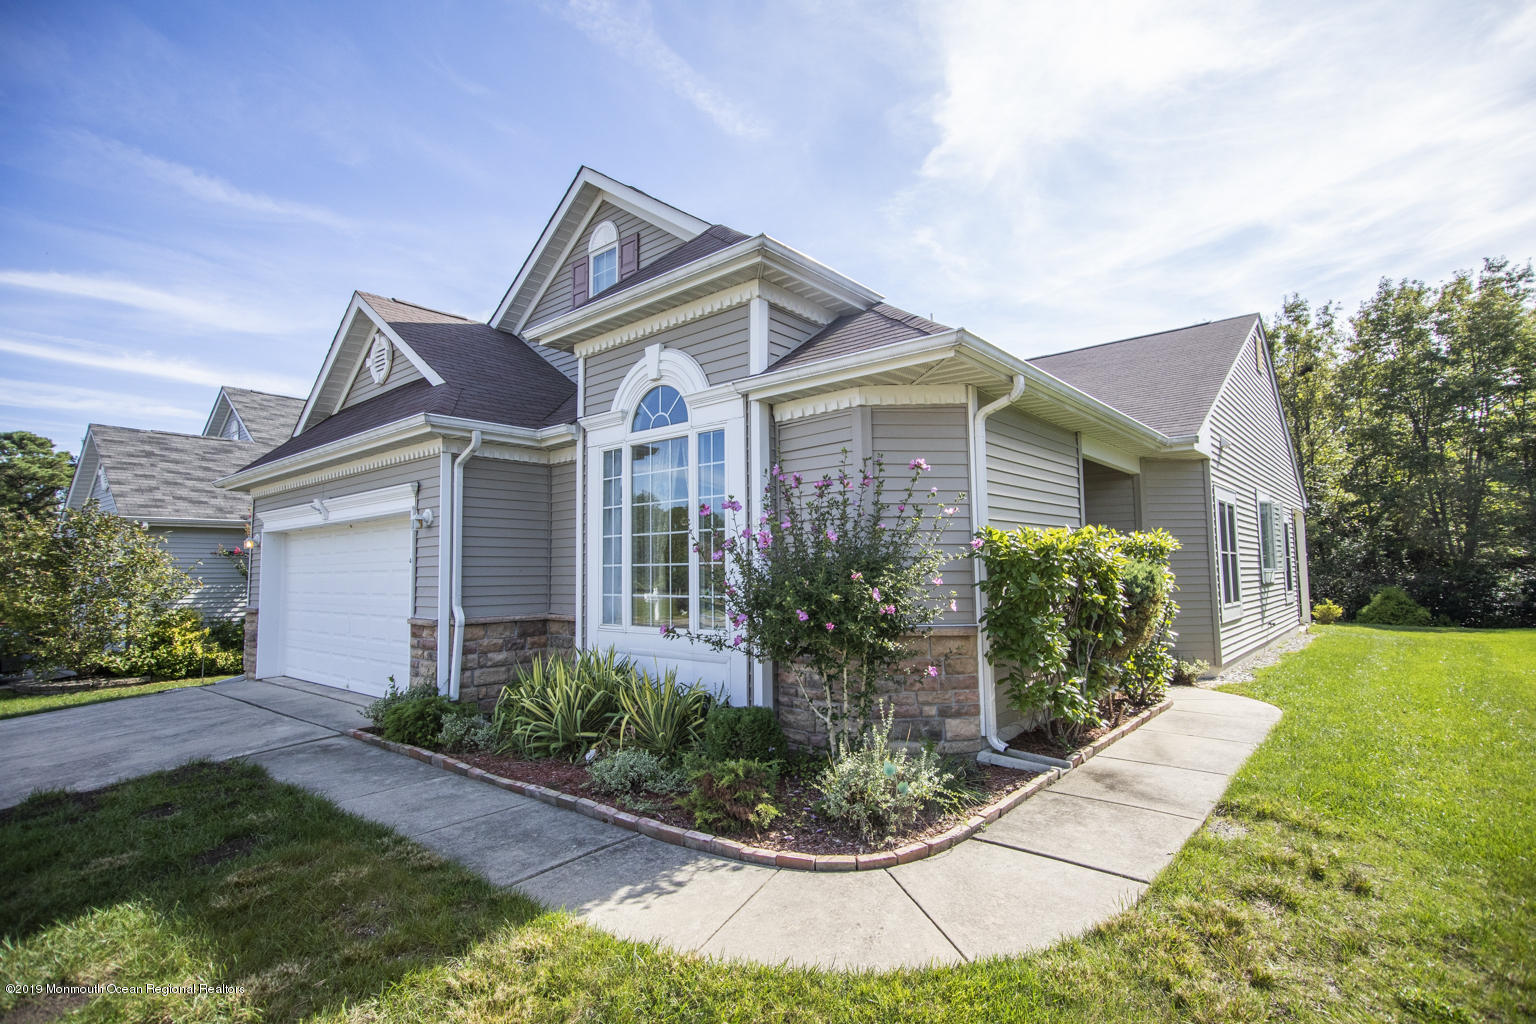 NEW Wood floors throughout. Home backs up to a lovely wooded area for added privacy. Must see. Schedule your appointment today.55+ Adult Community w/ many amenities; some of which are Bocci courts, Tennis courts, Indoor/Outdoor pools, Billiards room, etc.